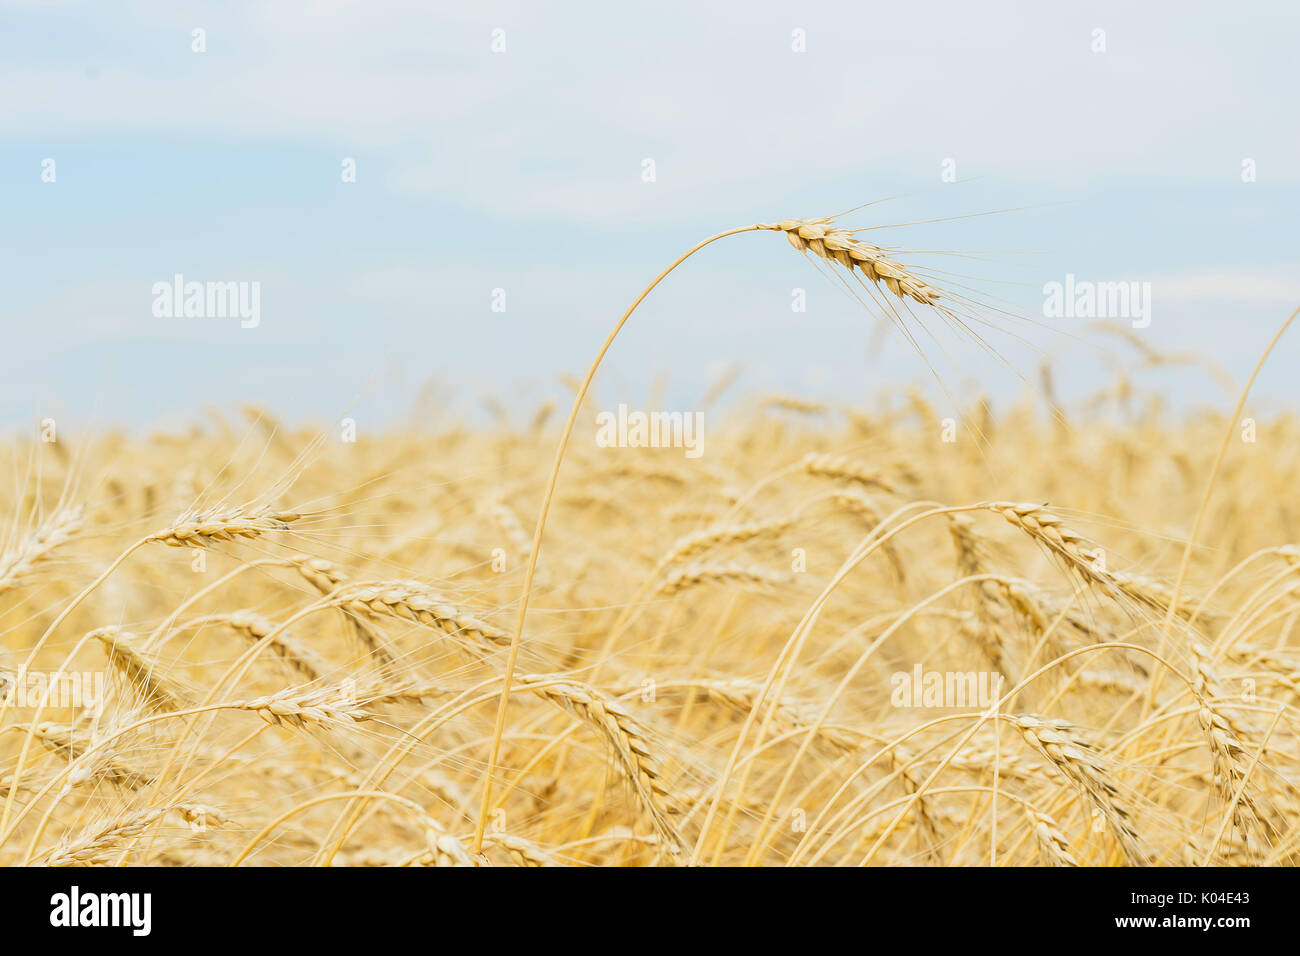 One high tall ripe full-grain cereal close-up on a hot summer afternoon against a yellow rye field, wheat and blue sky - Stock Image